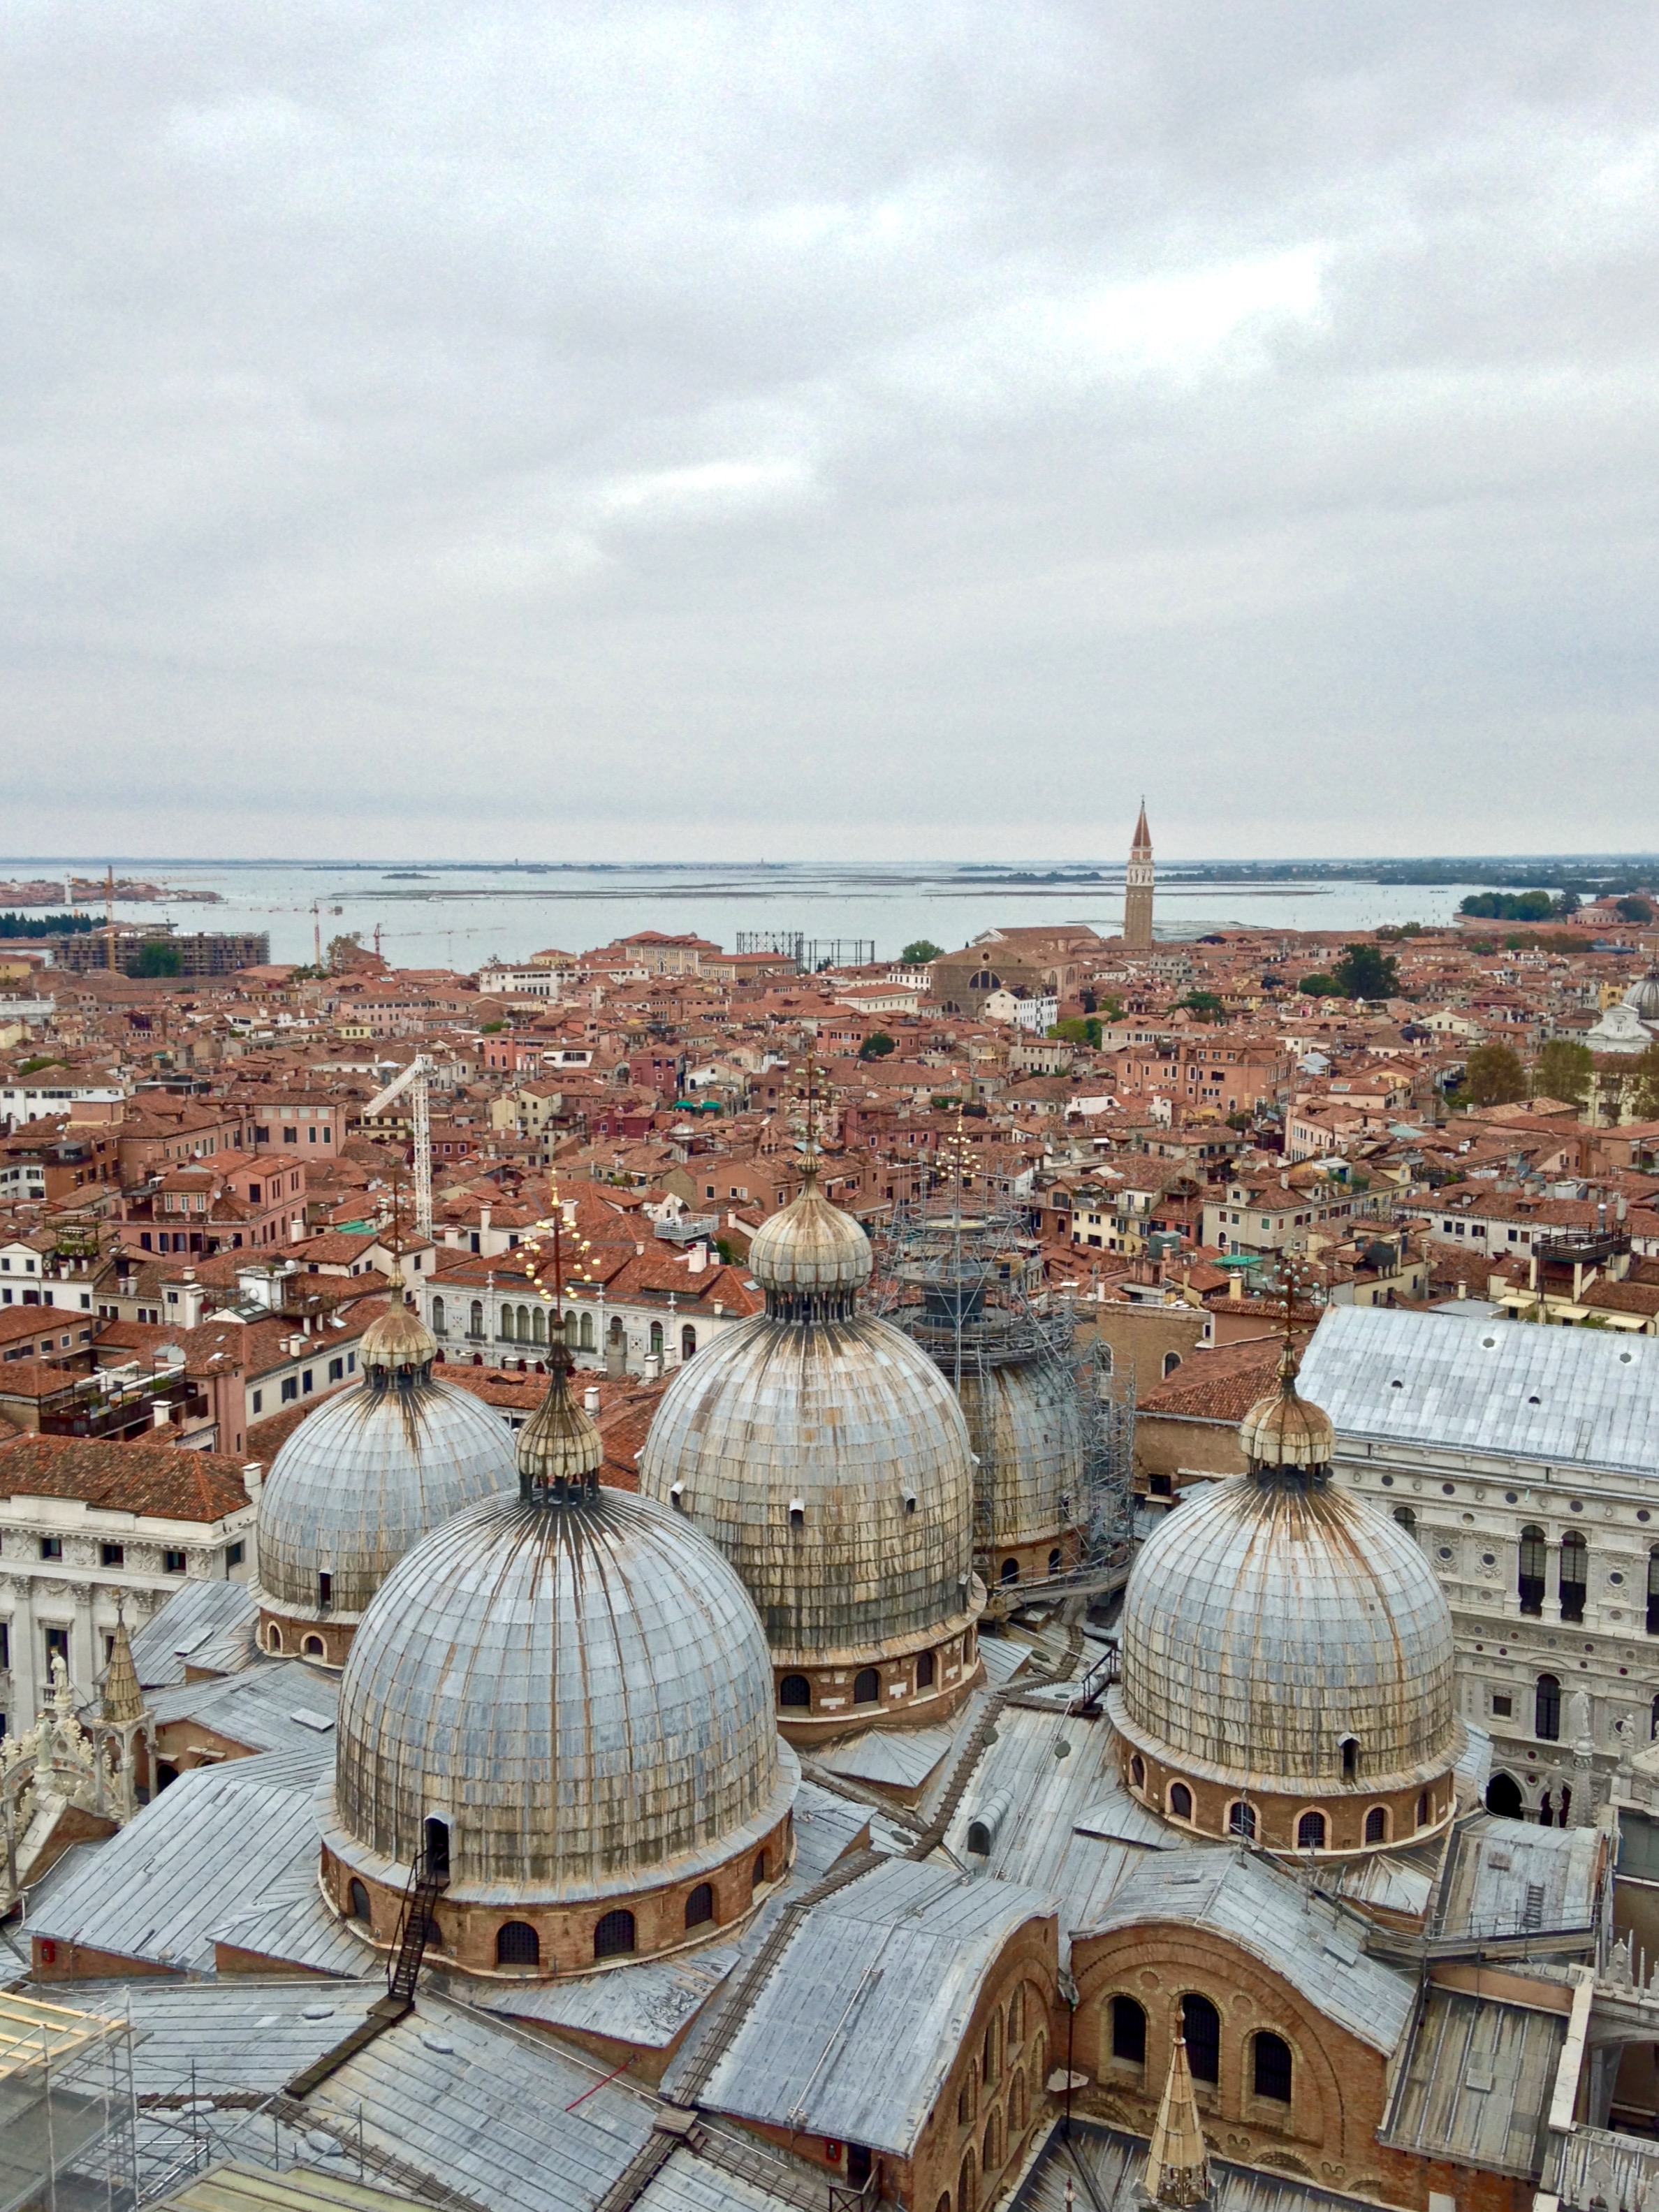 The view from above | Piazza San Marco, Venice